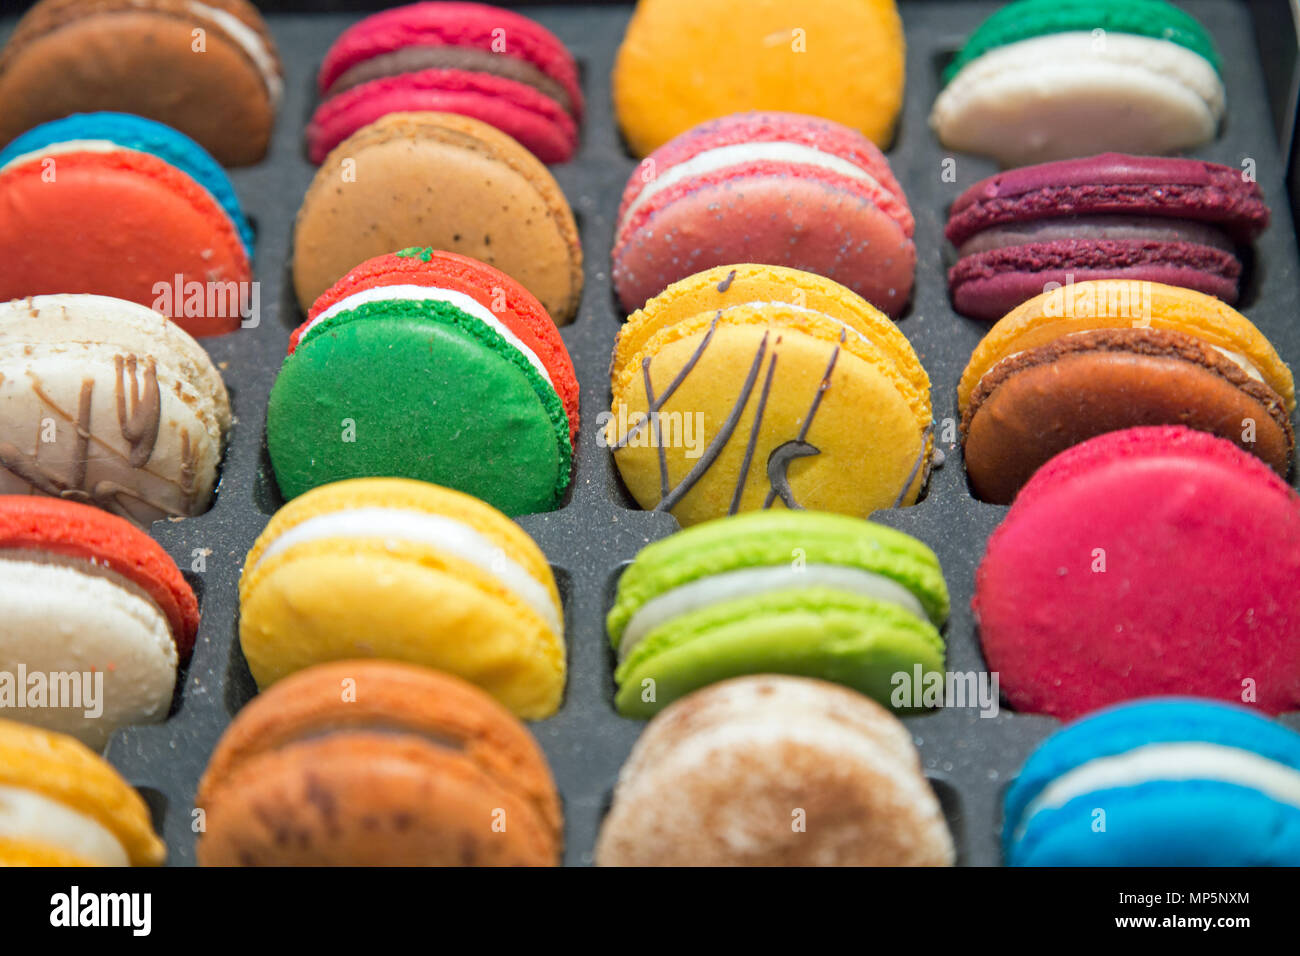 Colourful Macarons shot close up in landscape format. - Stock Image